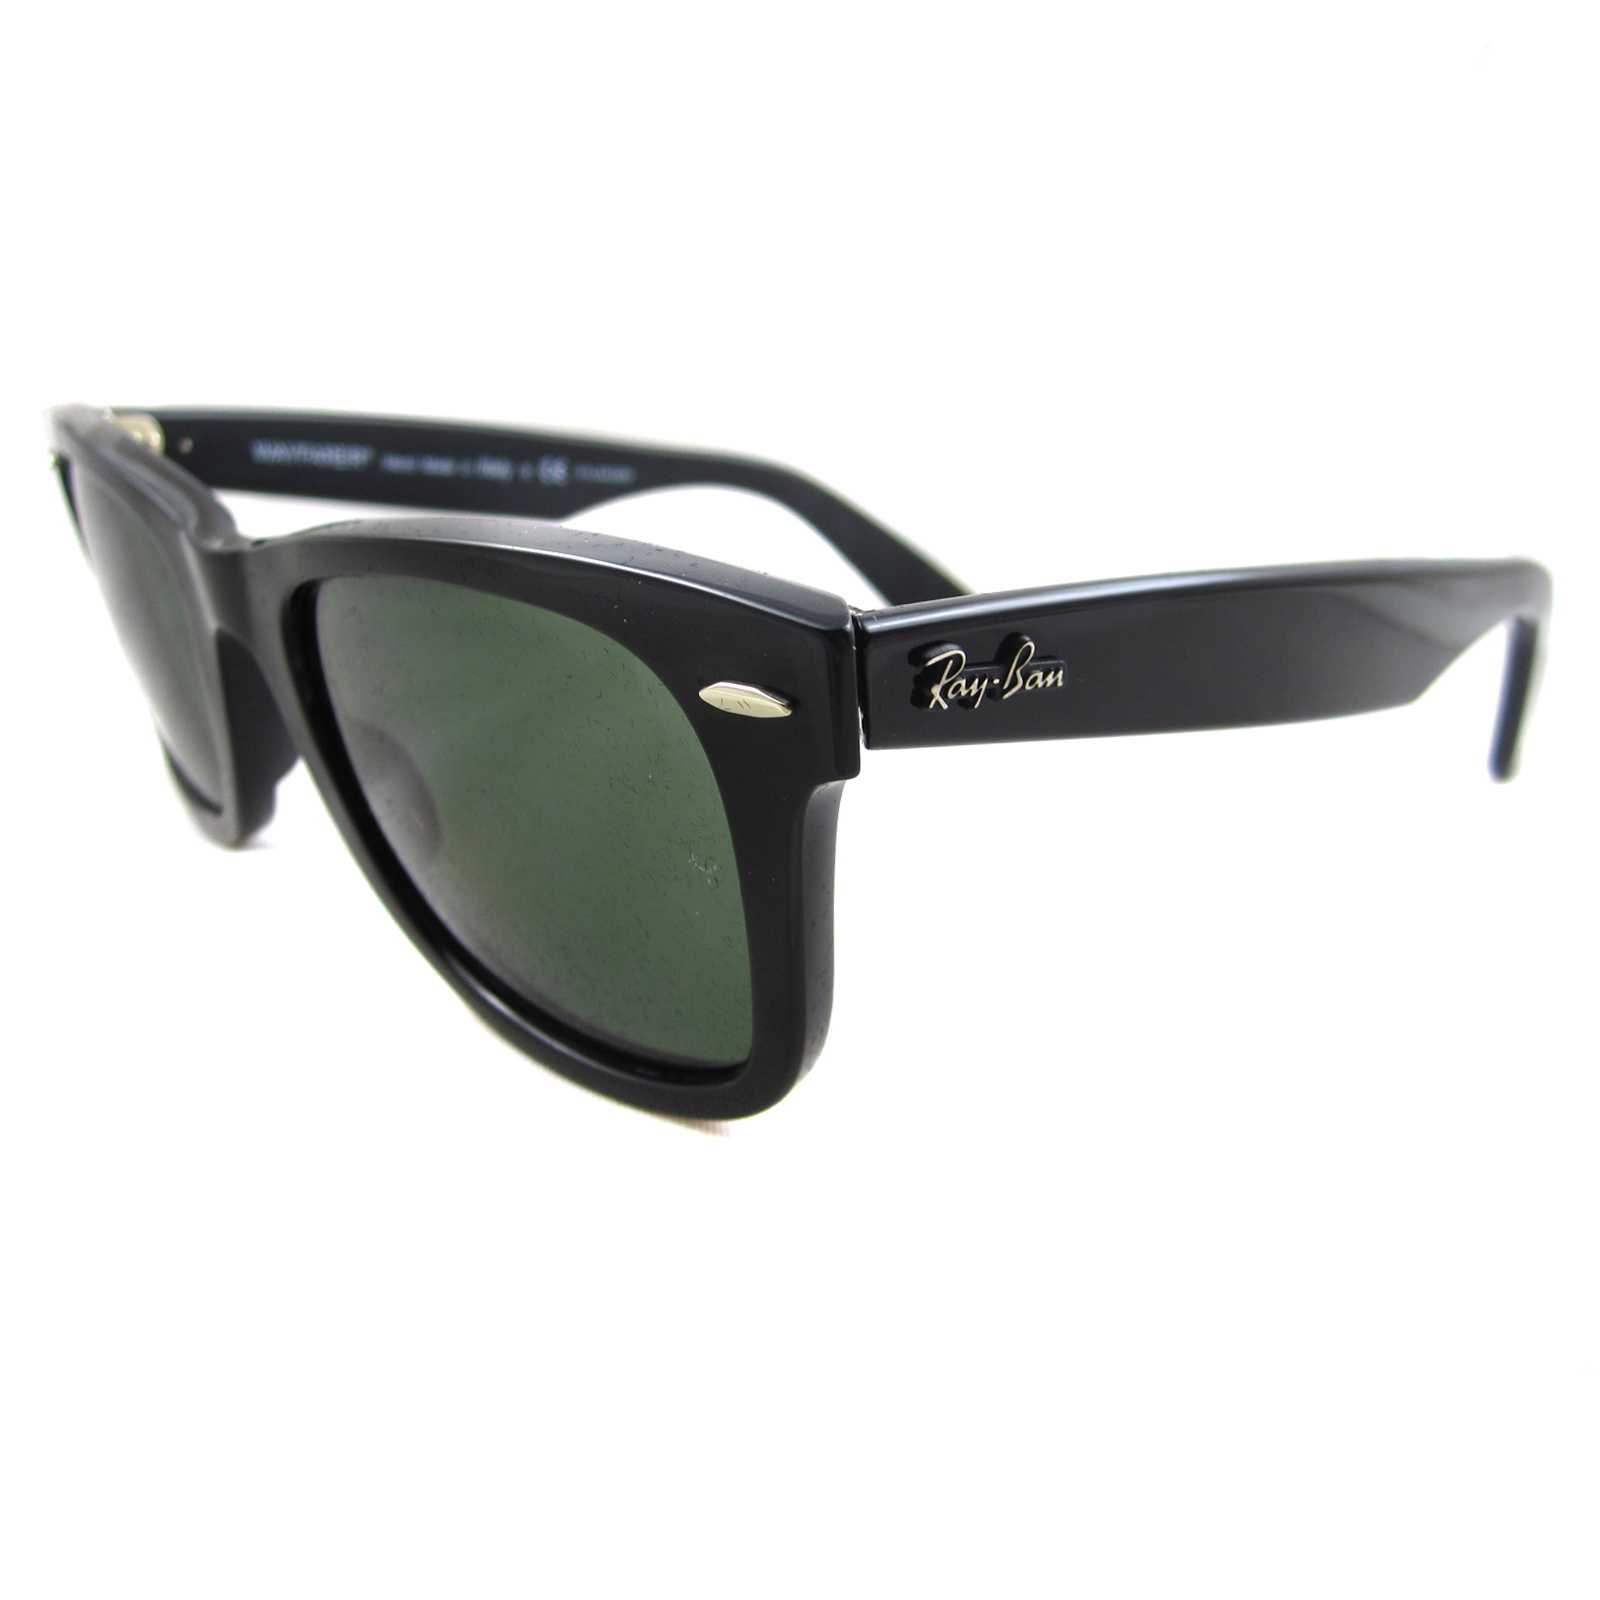 ray ban sunglasses wayfarer 2140 901 58 black polarized. Black Bedroom Furniture Sets. Home Design Ideas